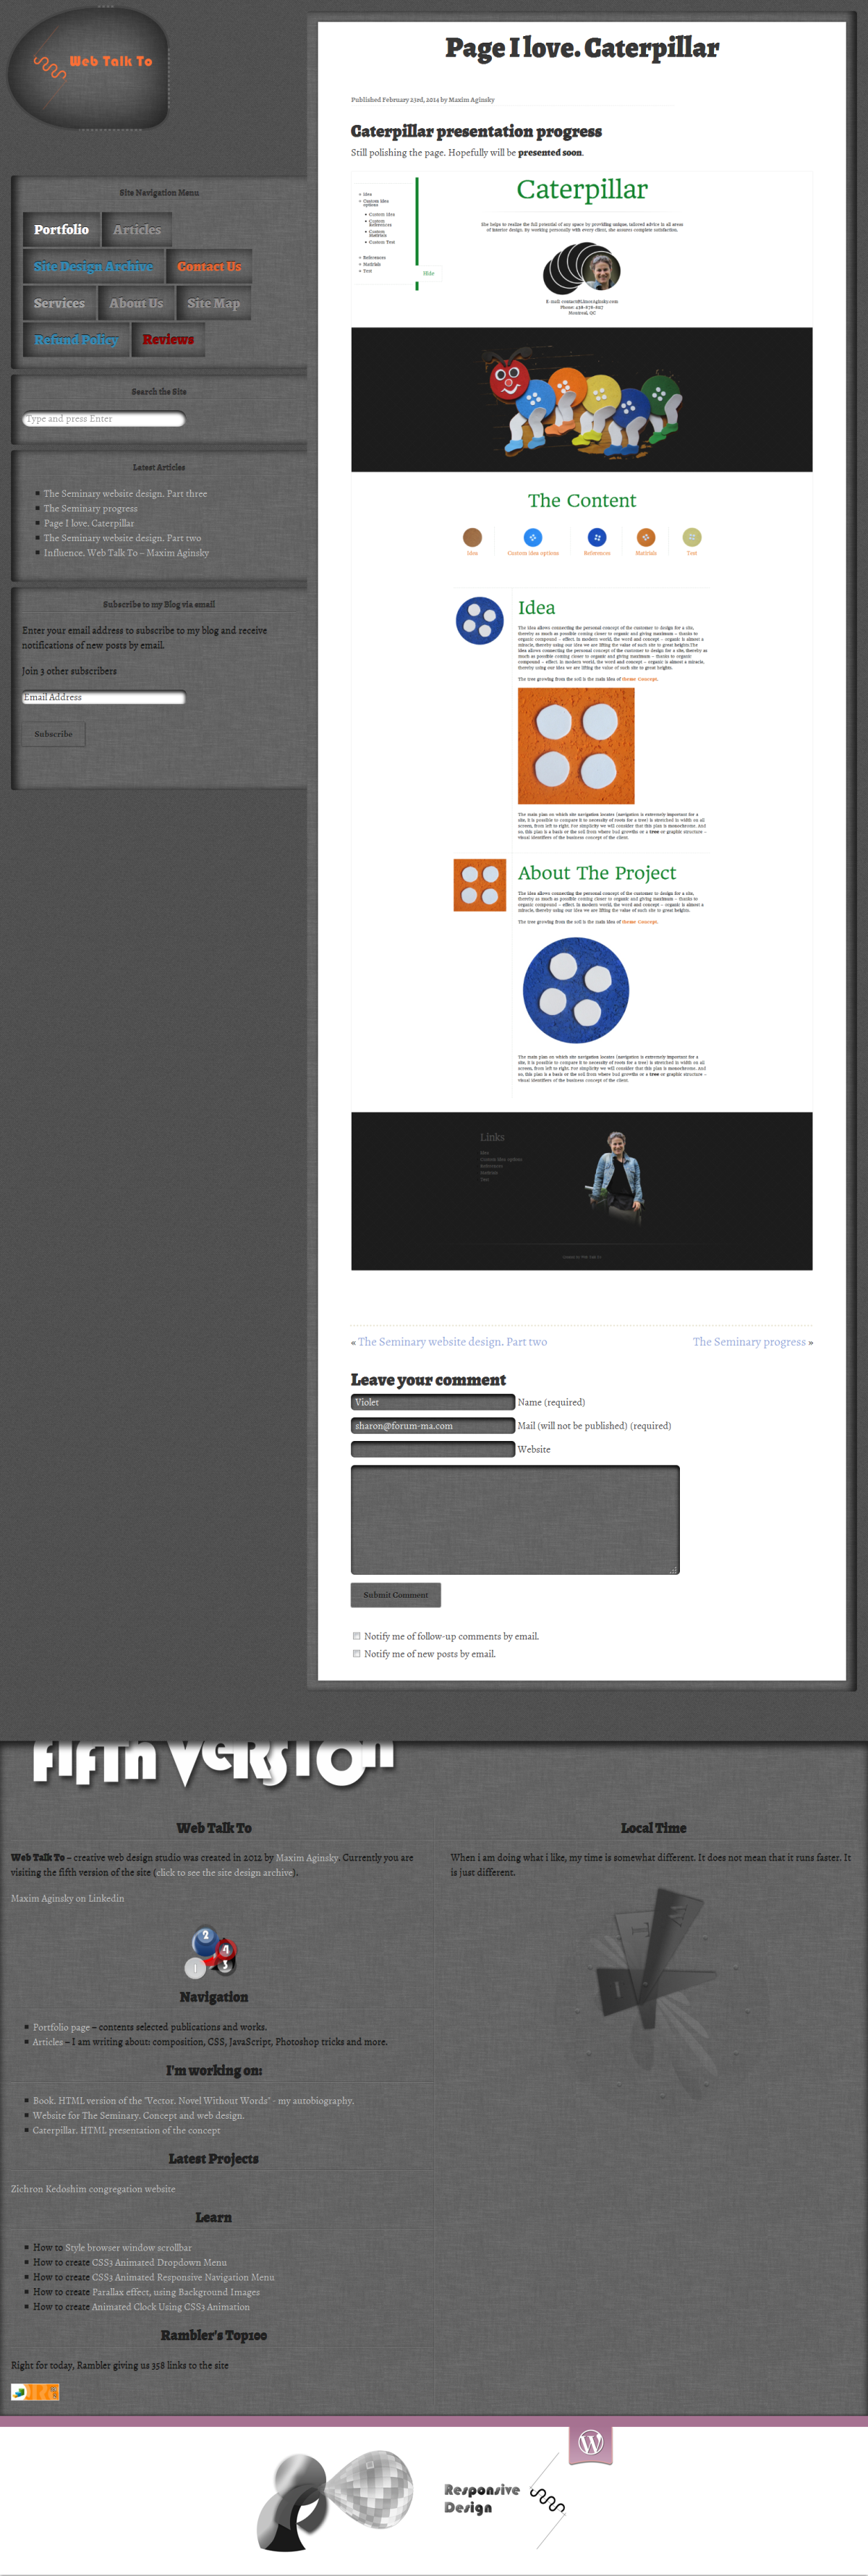 Web Talk To site design version 5